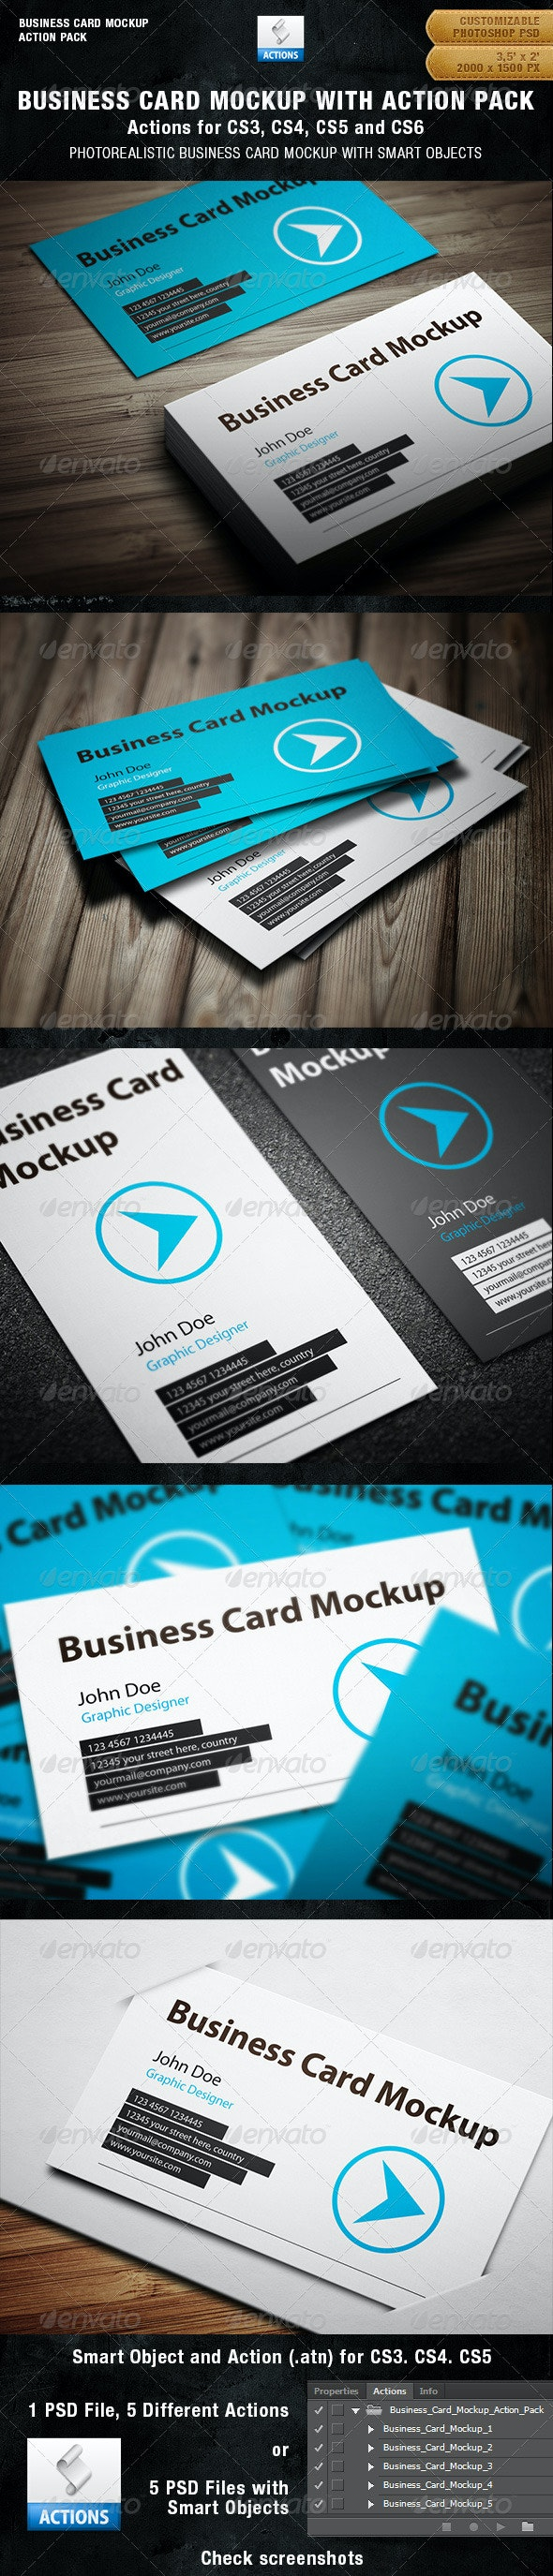 Business Card Mockup With Actions Pack - Business Cards Print